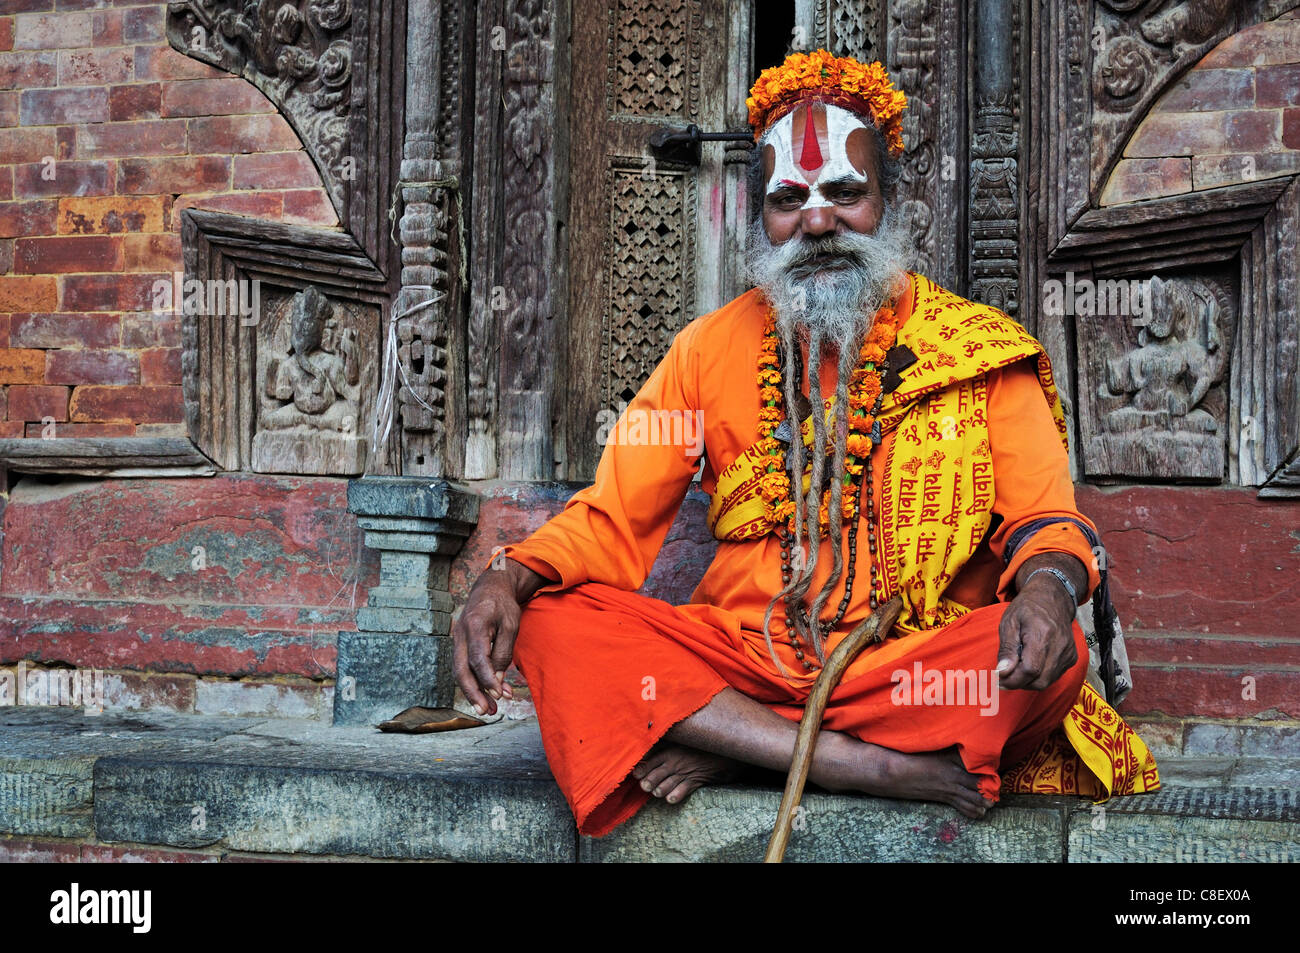 Sadhu, Durbar Square, UNESCO World Heritage Site, Kathmandu, Bagmati, Central Region, Nepal - Stock Image